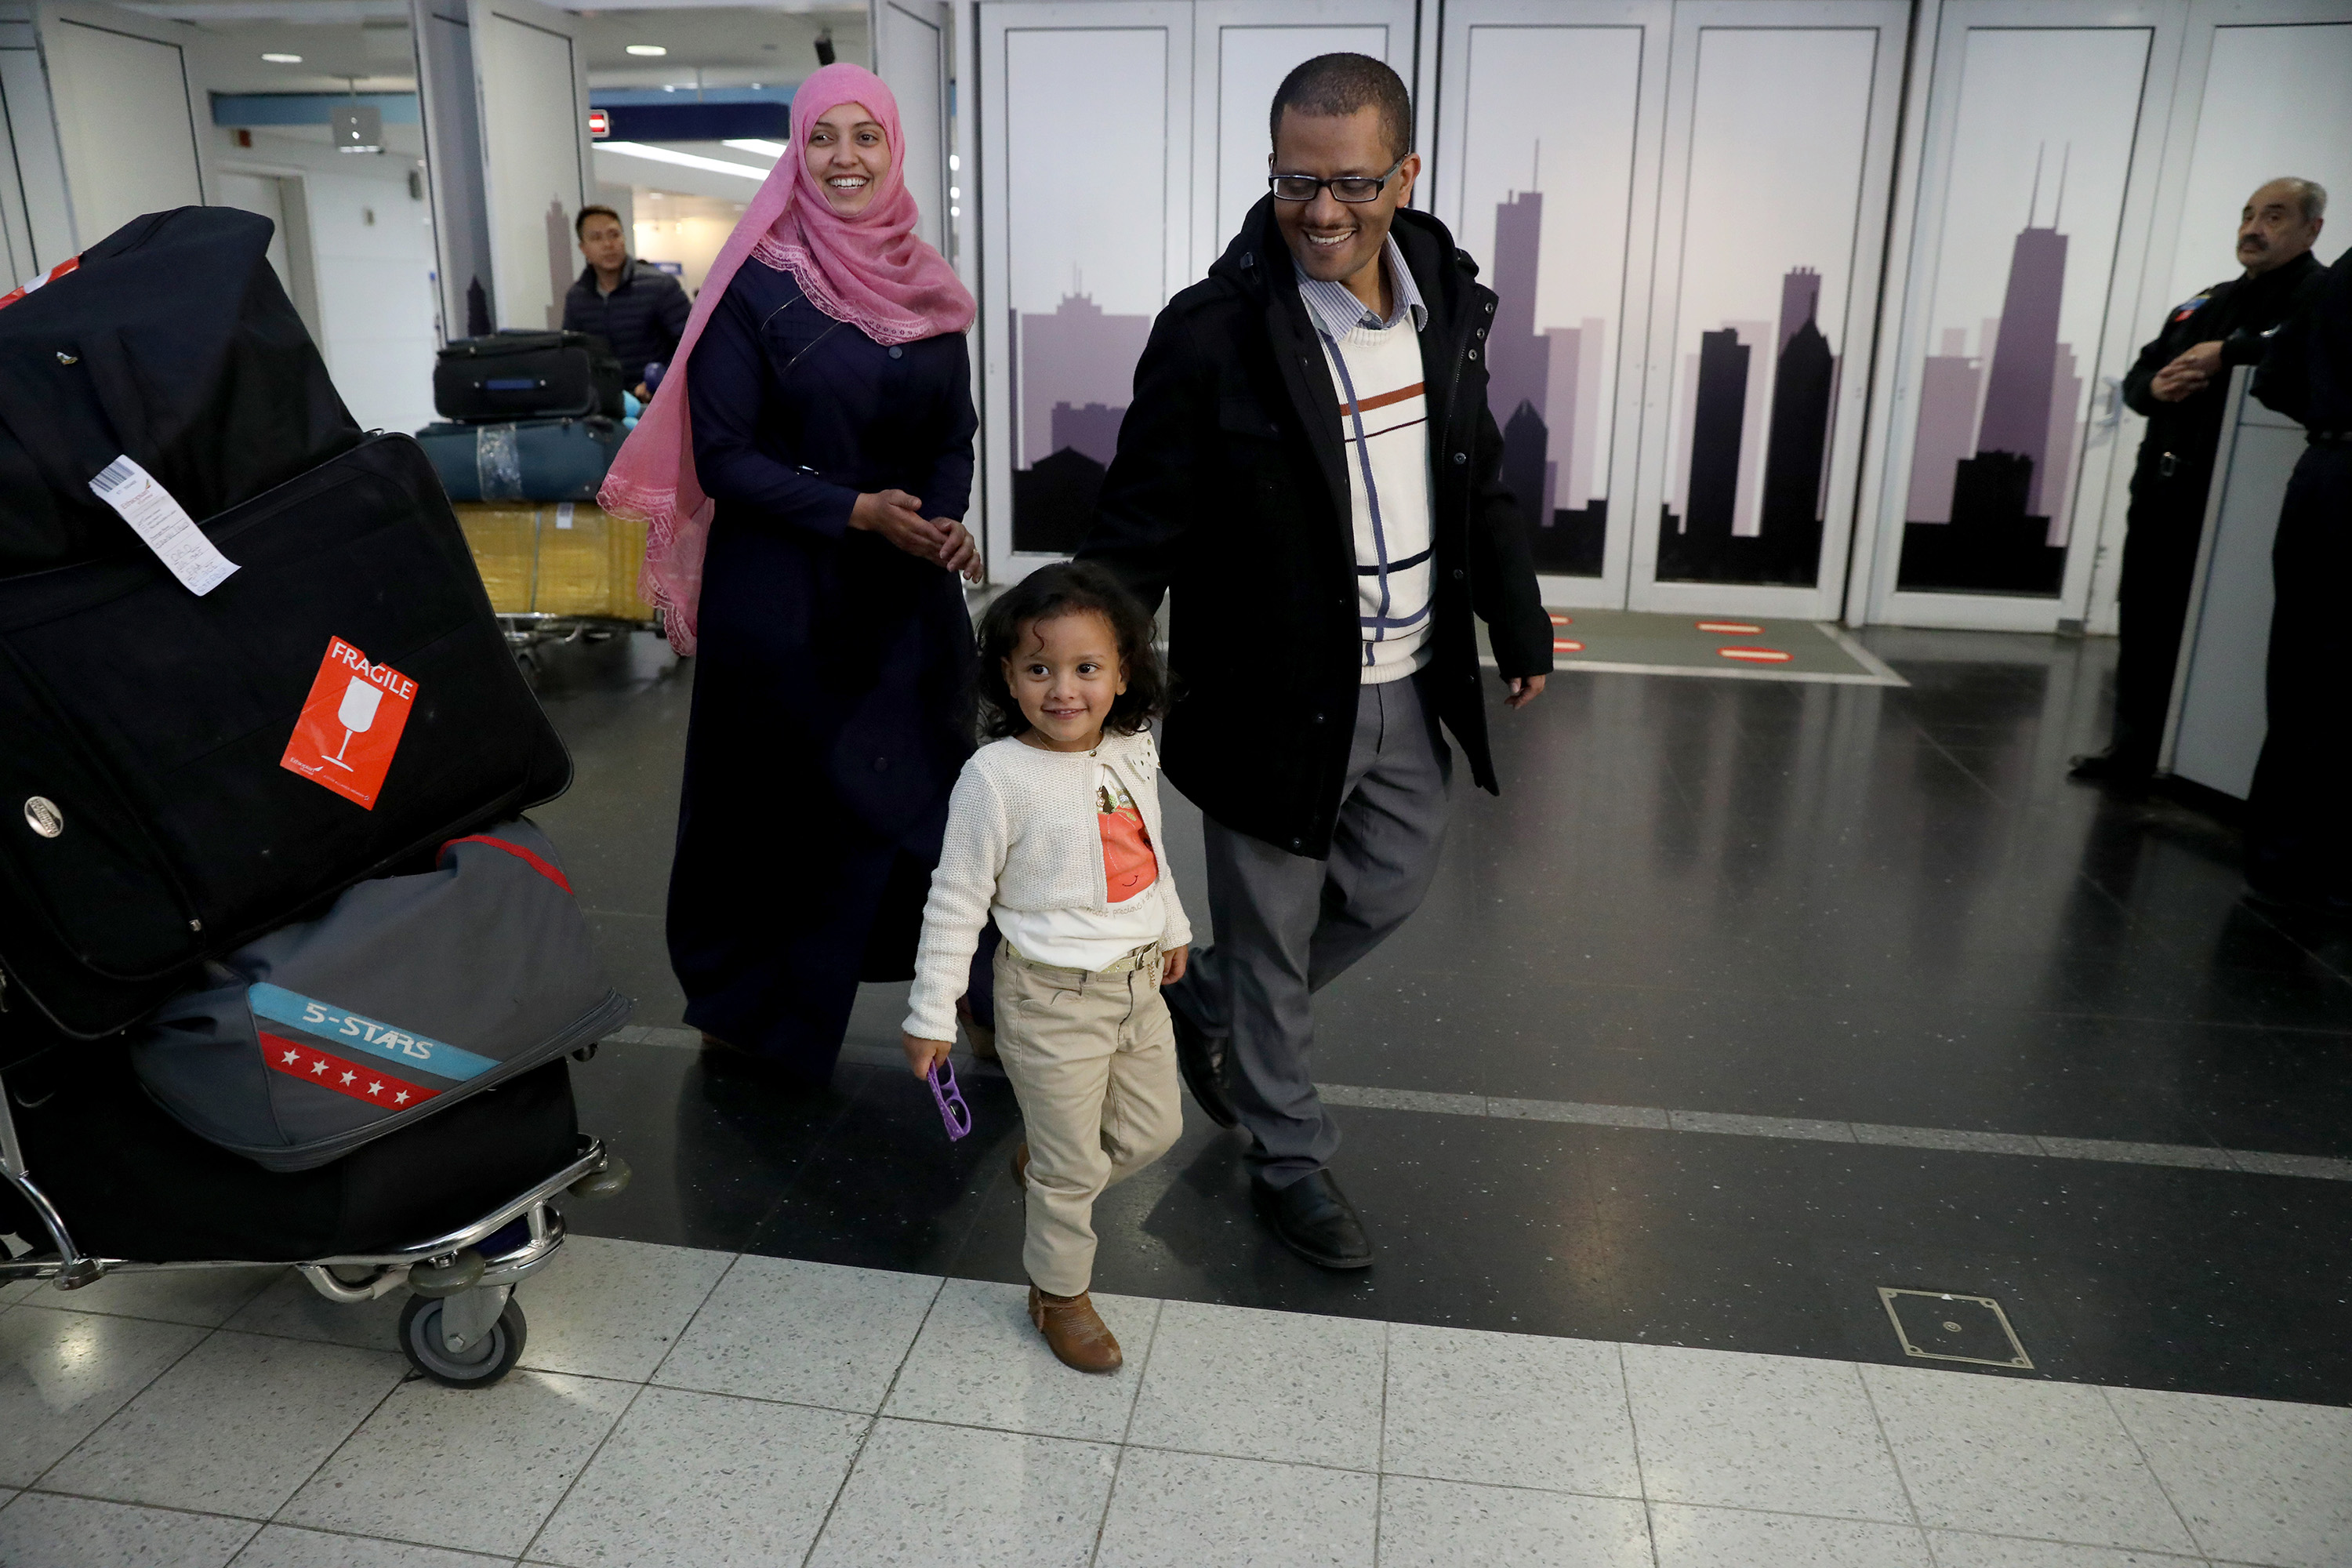 Abdusebur Jemal, right, and Haifa Abdulwahab Hussein Mohammed and their daughter, Rudaynah Jemal, 3, walk through O'Hare International Airport after their reunion on Feb. 5, 2017. (Nancy Stone/Chicago Tribune/TNS)